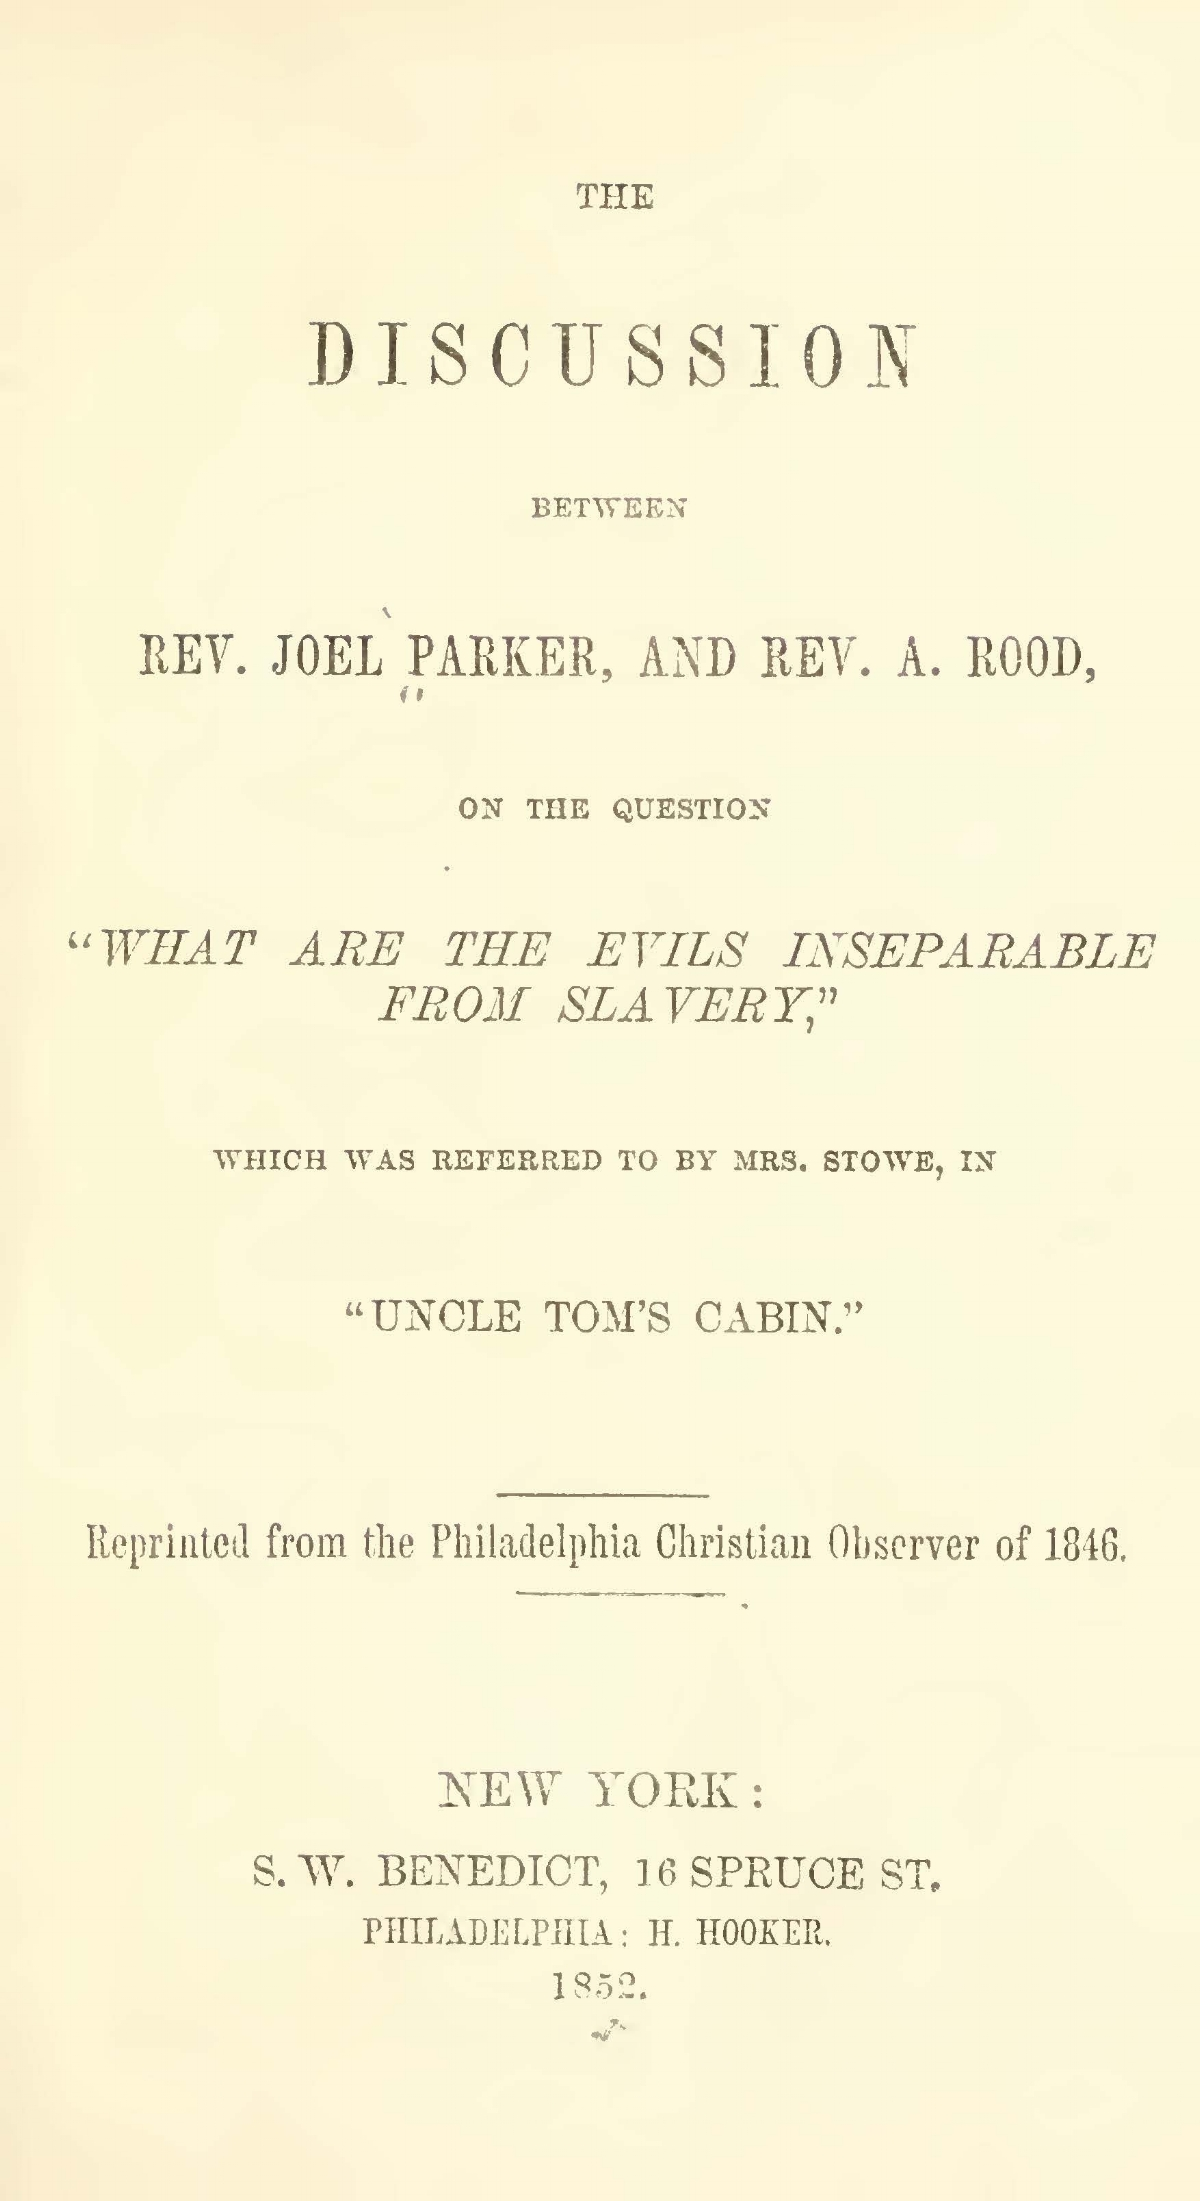 Parker, Joel, The Discussion Between Rev. Joel Parker, and Rev. A. Rood Title Page.jpg